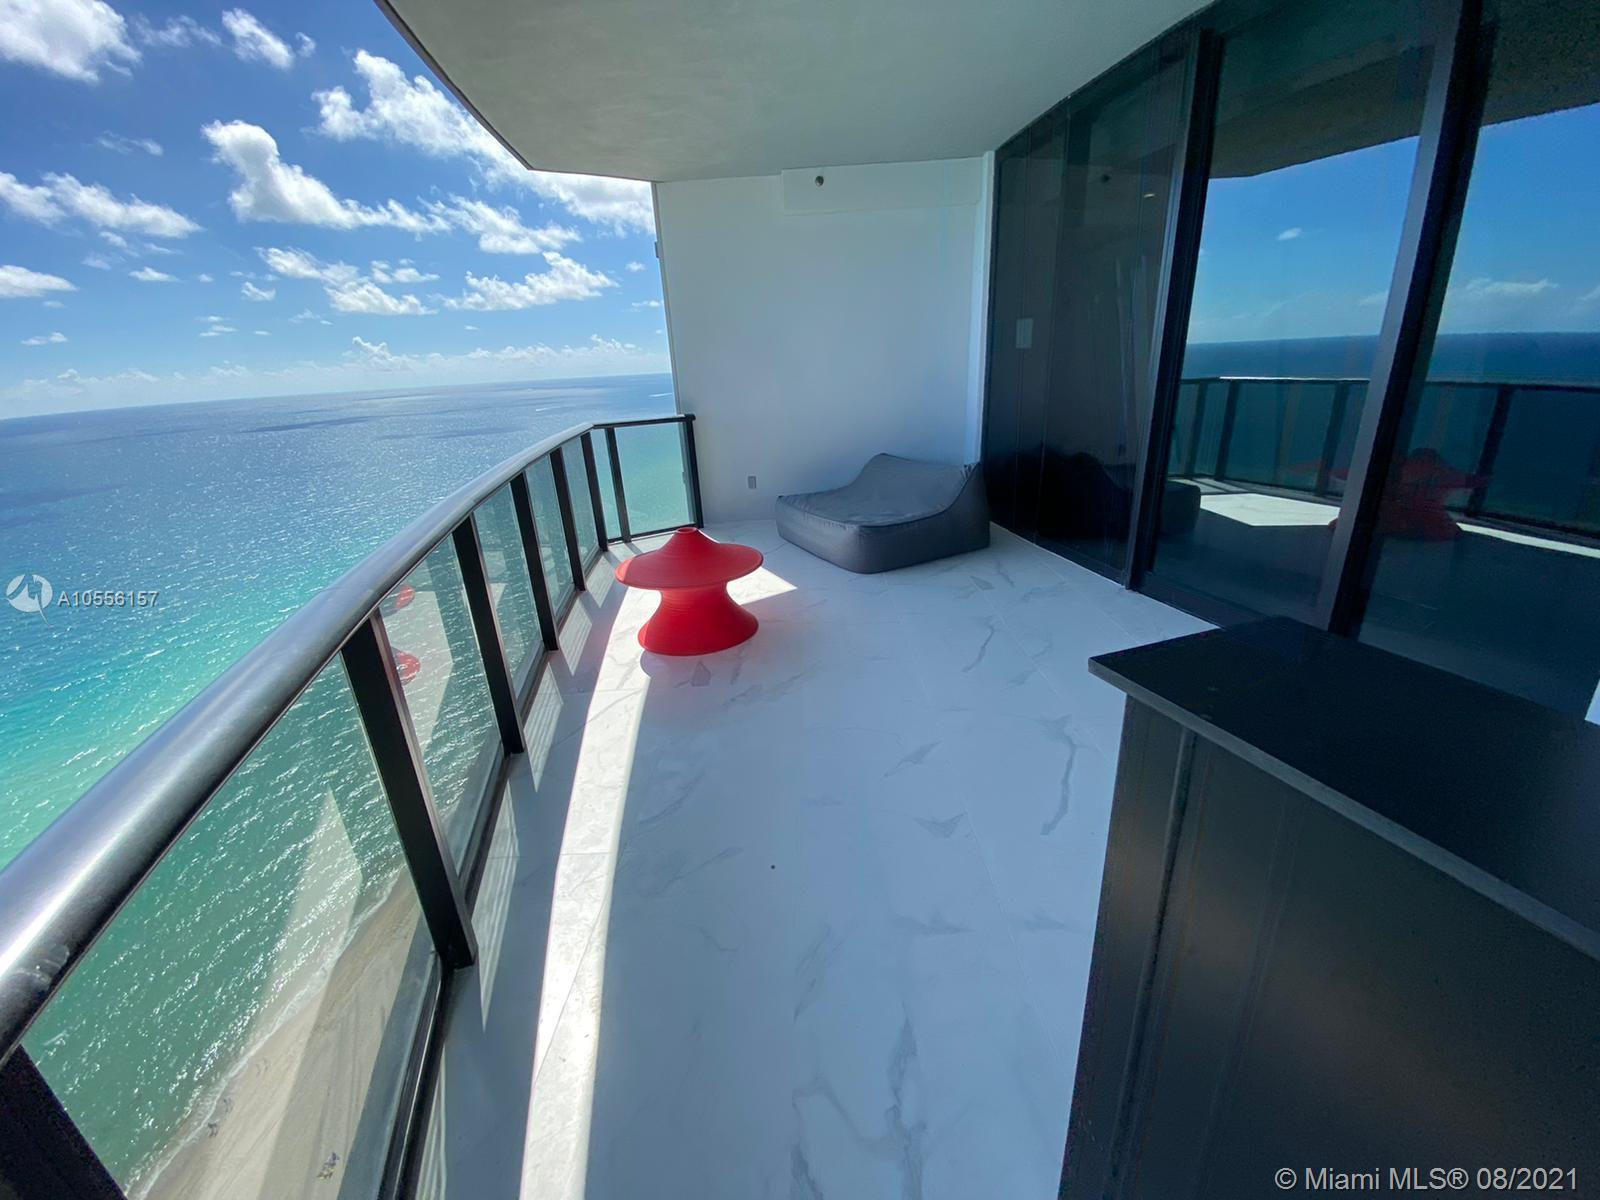 *Best Deal in Porsche*Amazing Unit, Direct Ocean Front, 4bed/3bath+1hbath+plus service room with bath+ Den/Family room. Terrace with private pool & summer kitchen, private garage, robotic car elevator. Five starts amenities: gym, spa, beach service, private restaurant, theater, virtual games, race car simulator, lounge bar  Highlights: Recently finished (floors, remote control shades, custom closets) Unit is leased from 3/1/21 until 2/28/22 Prepayed $180,000 for 1 year Buyer can buy it with the lease. Great investment opportunity!  But if buyer does not want the tenant we can notify him and he will vacate (we have a clause). Garage is at the lower level (access with private stairs and private elevator) it is not at the kitchen level.  Showing requests within 24 hs notice.